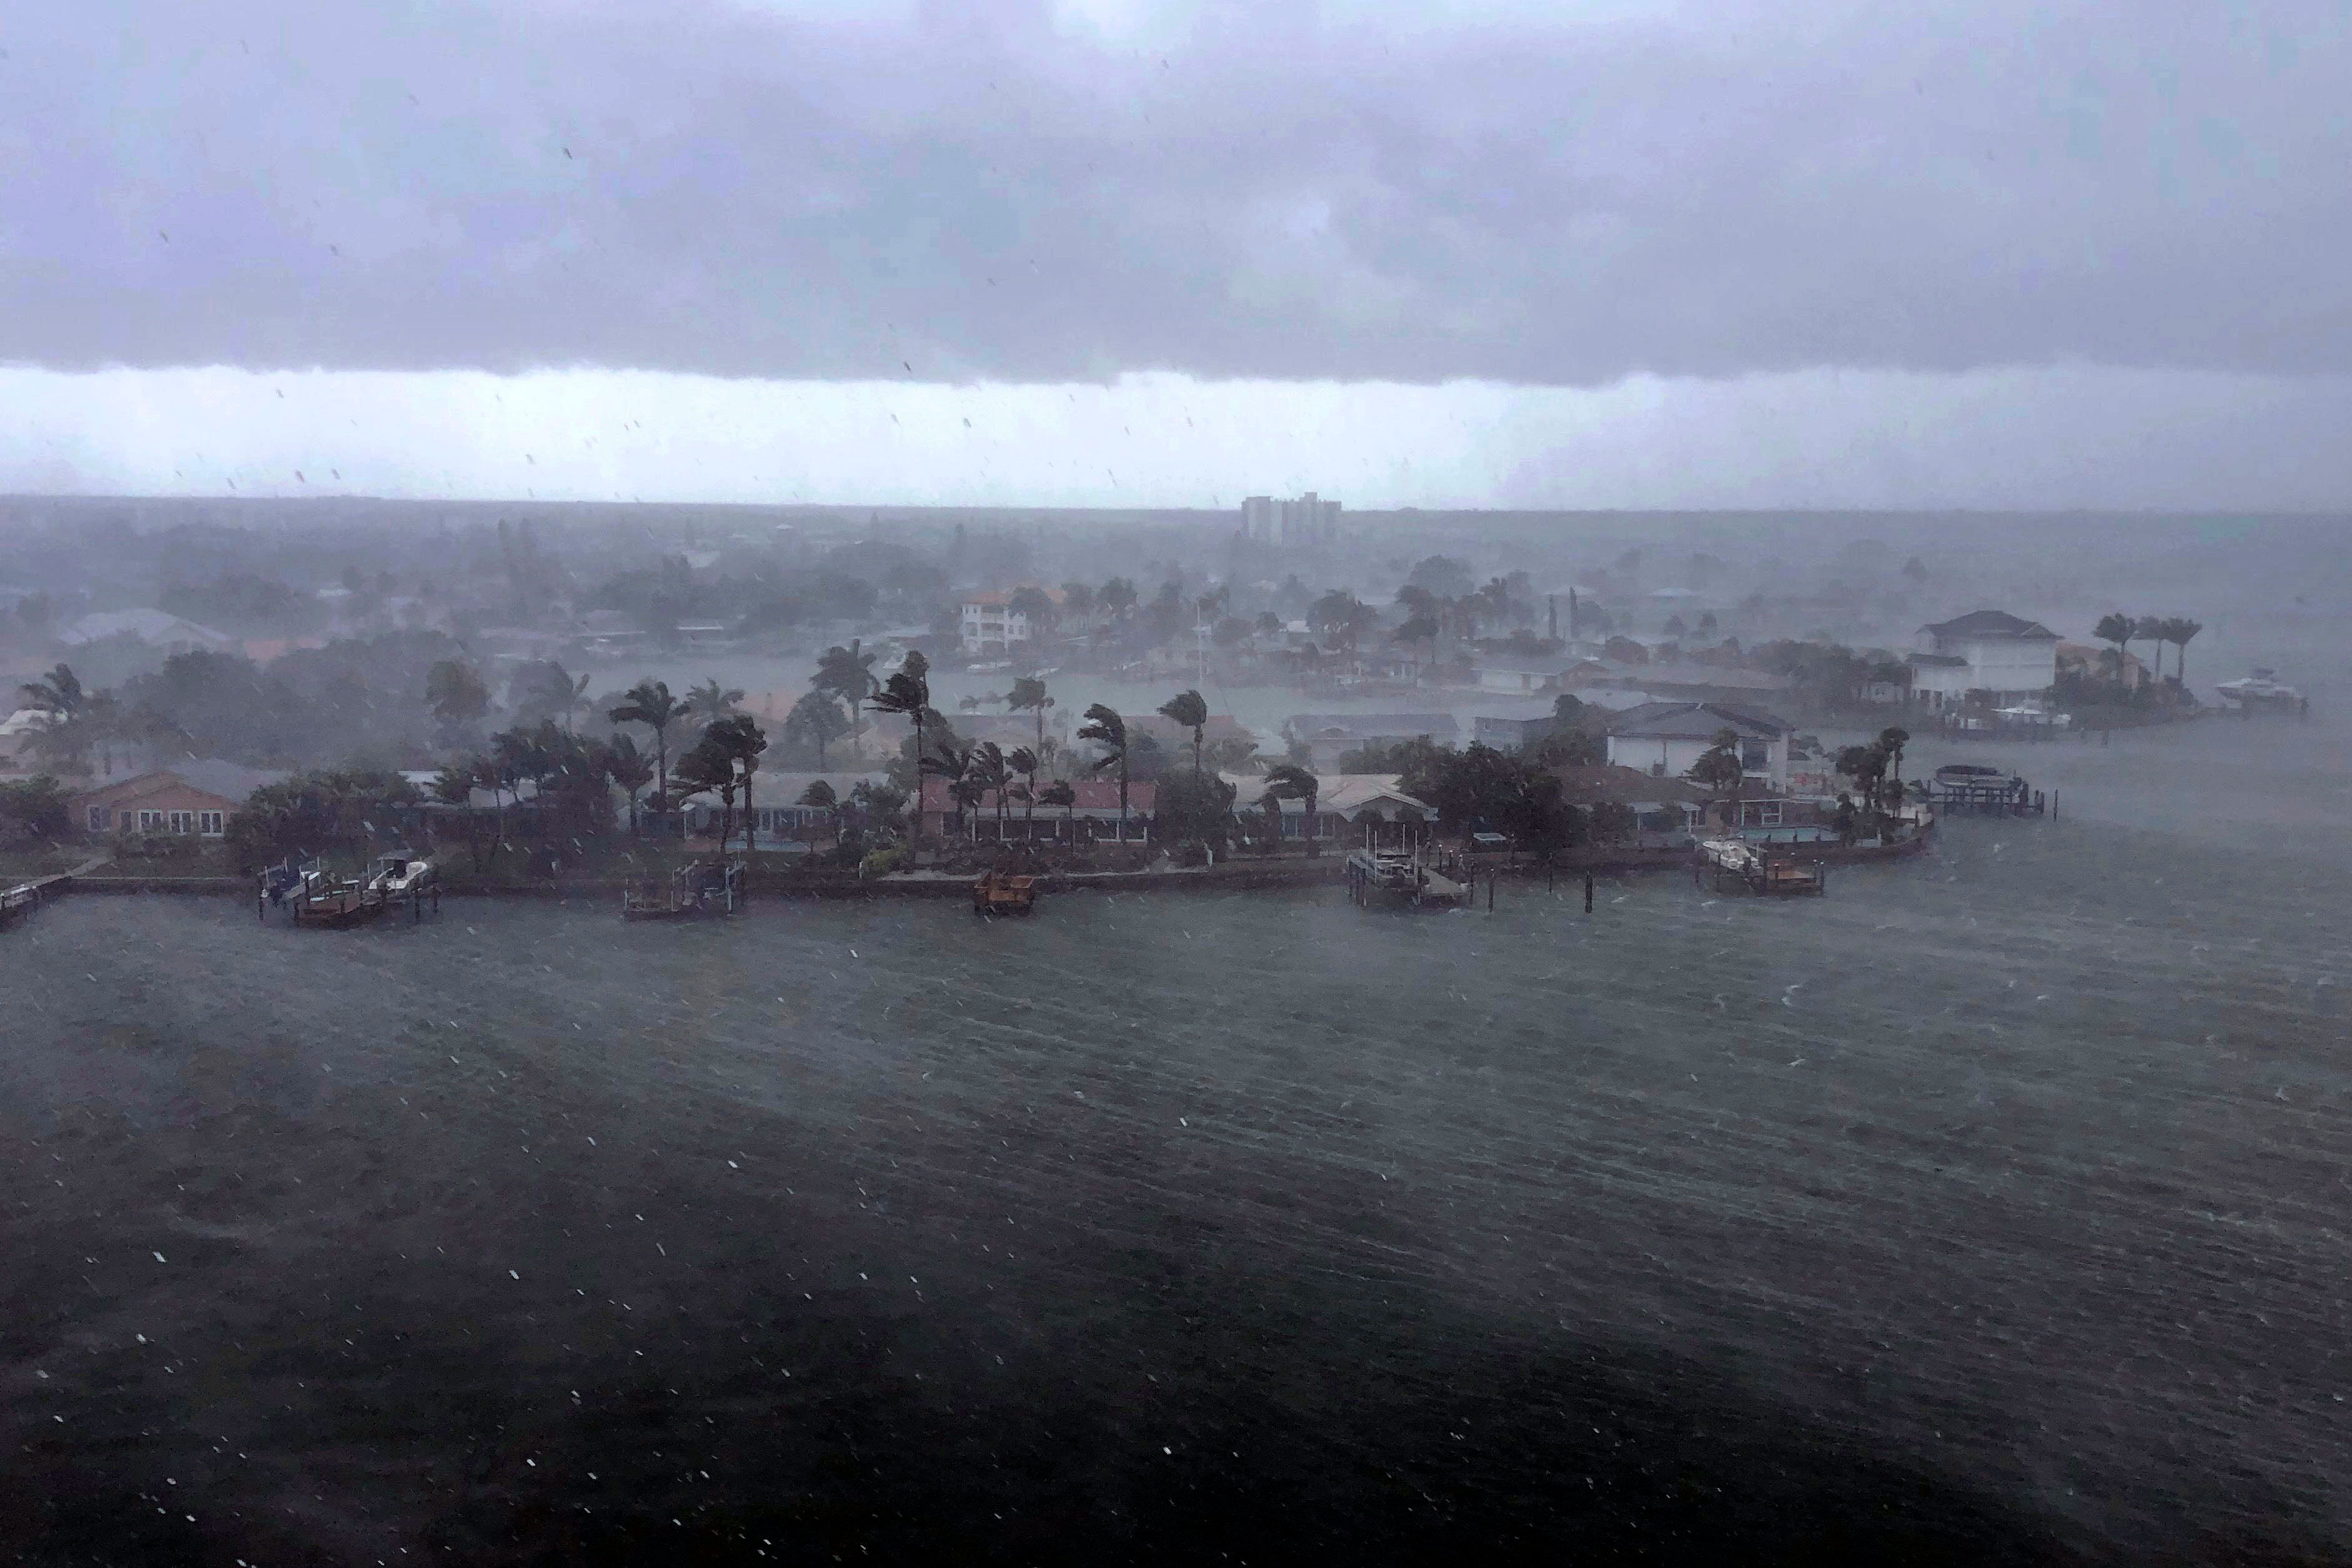 Tropical Storm Elsa brings a downpour of rain over the neighborhood of Paradise Island on Treasure Island, Florida, on Tuesday afternoon, July 6.